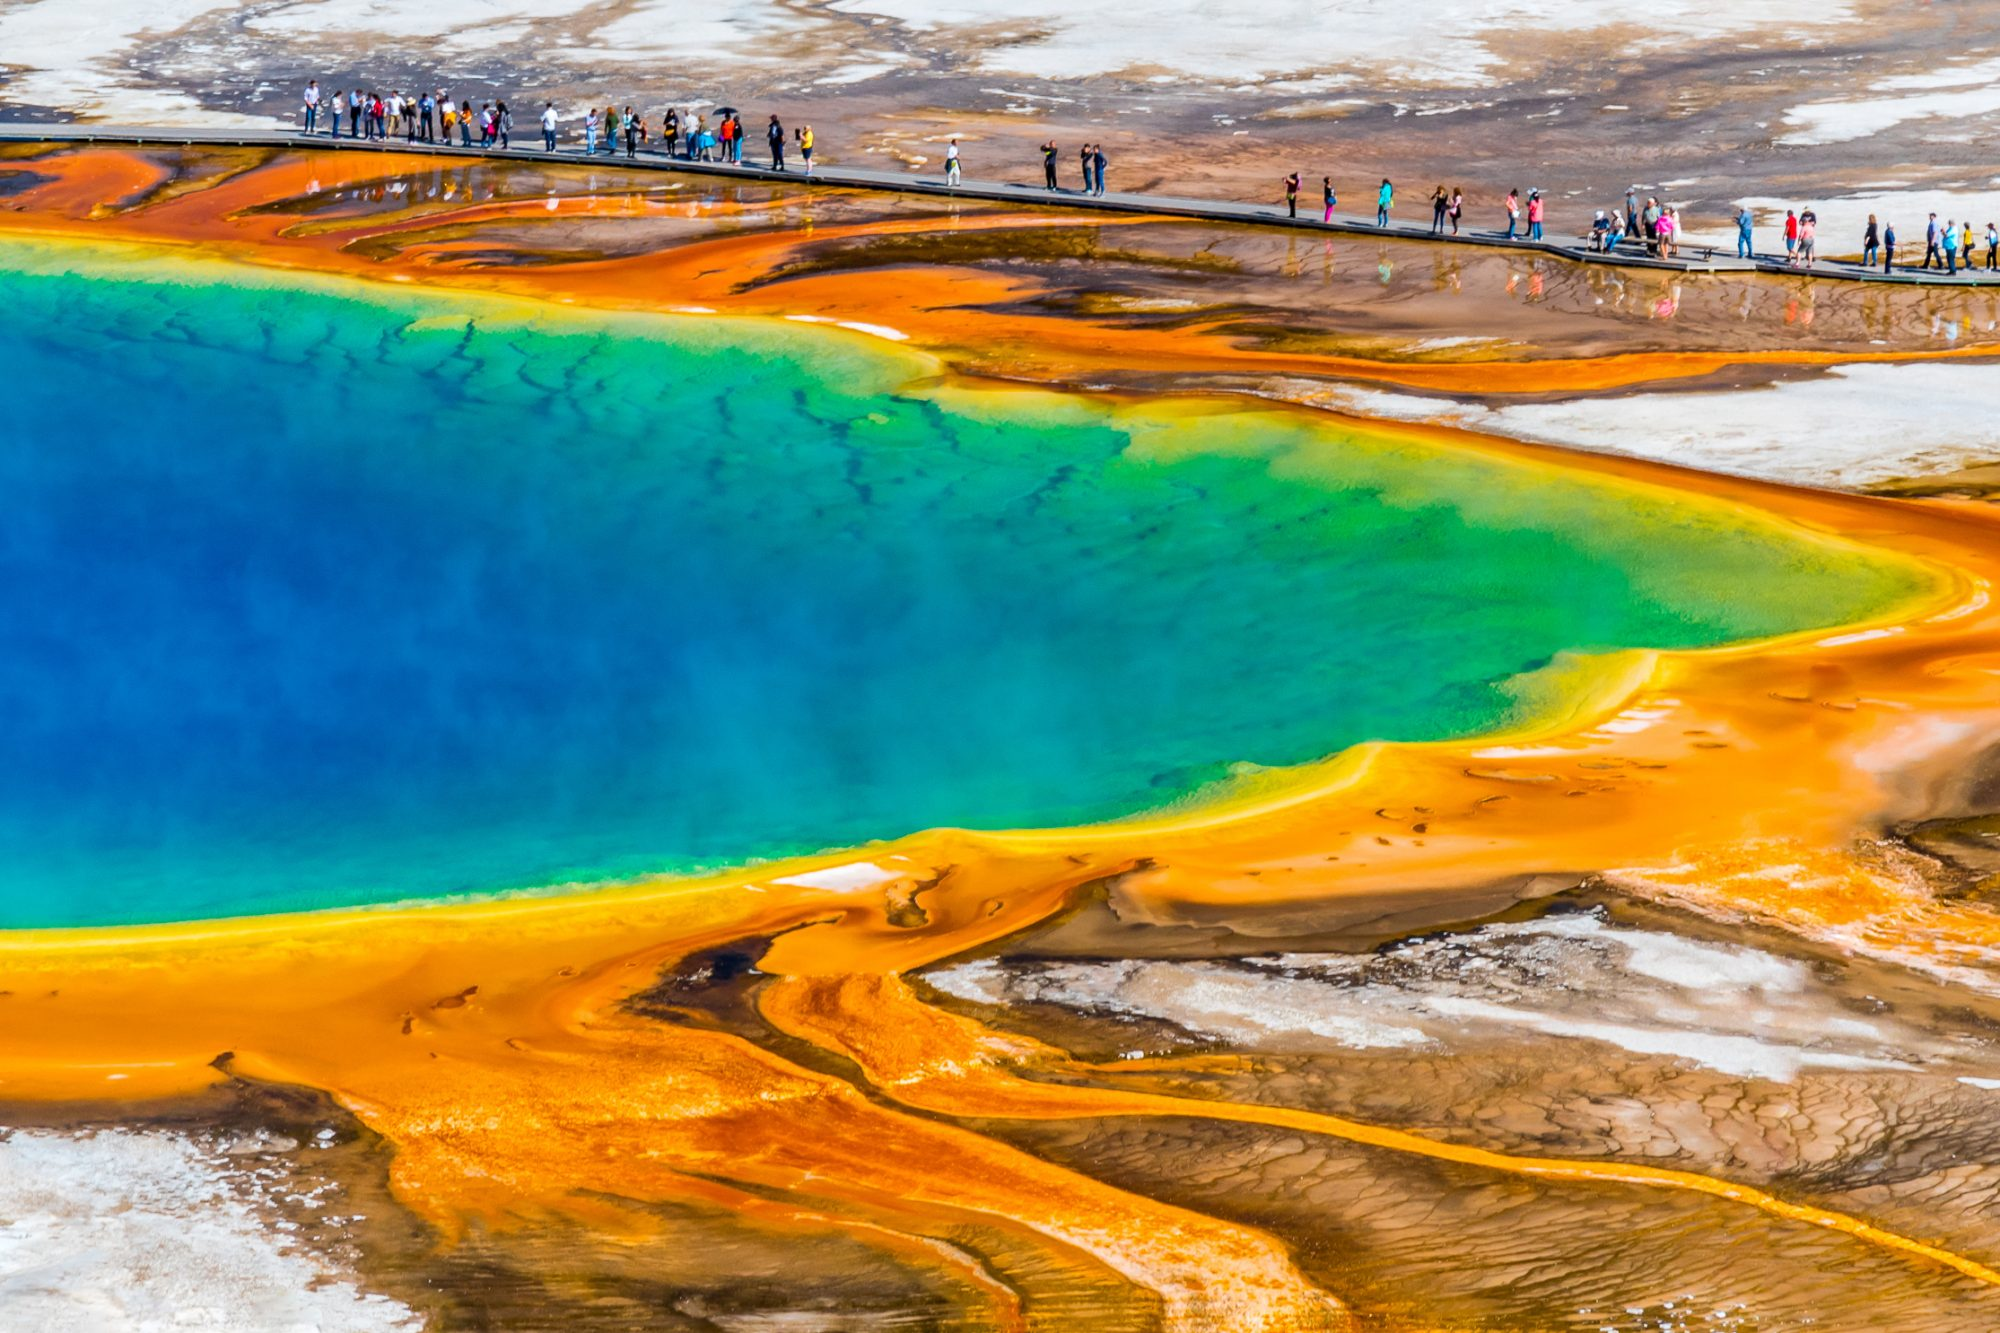 5 Stunning Natural Wonders You Can See in the U.S.